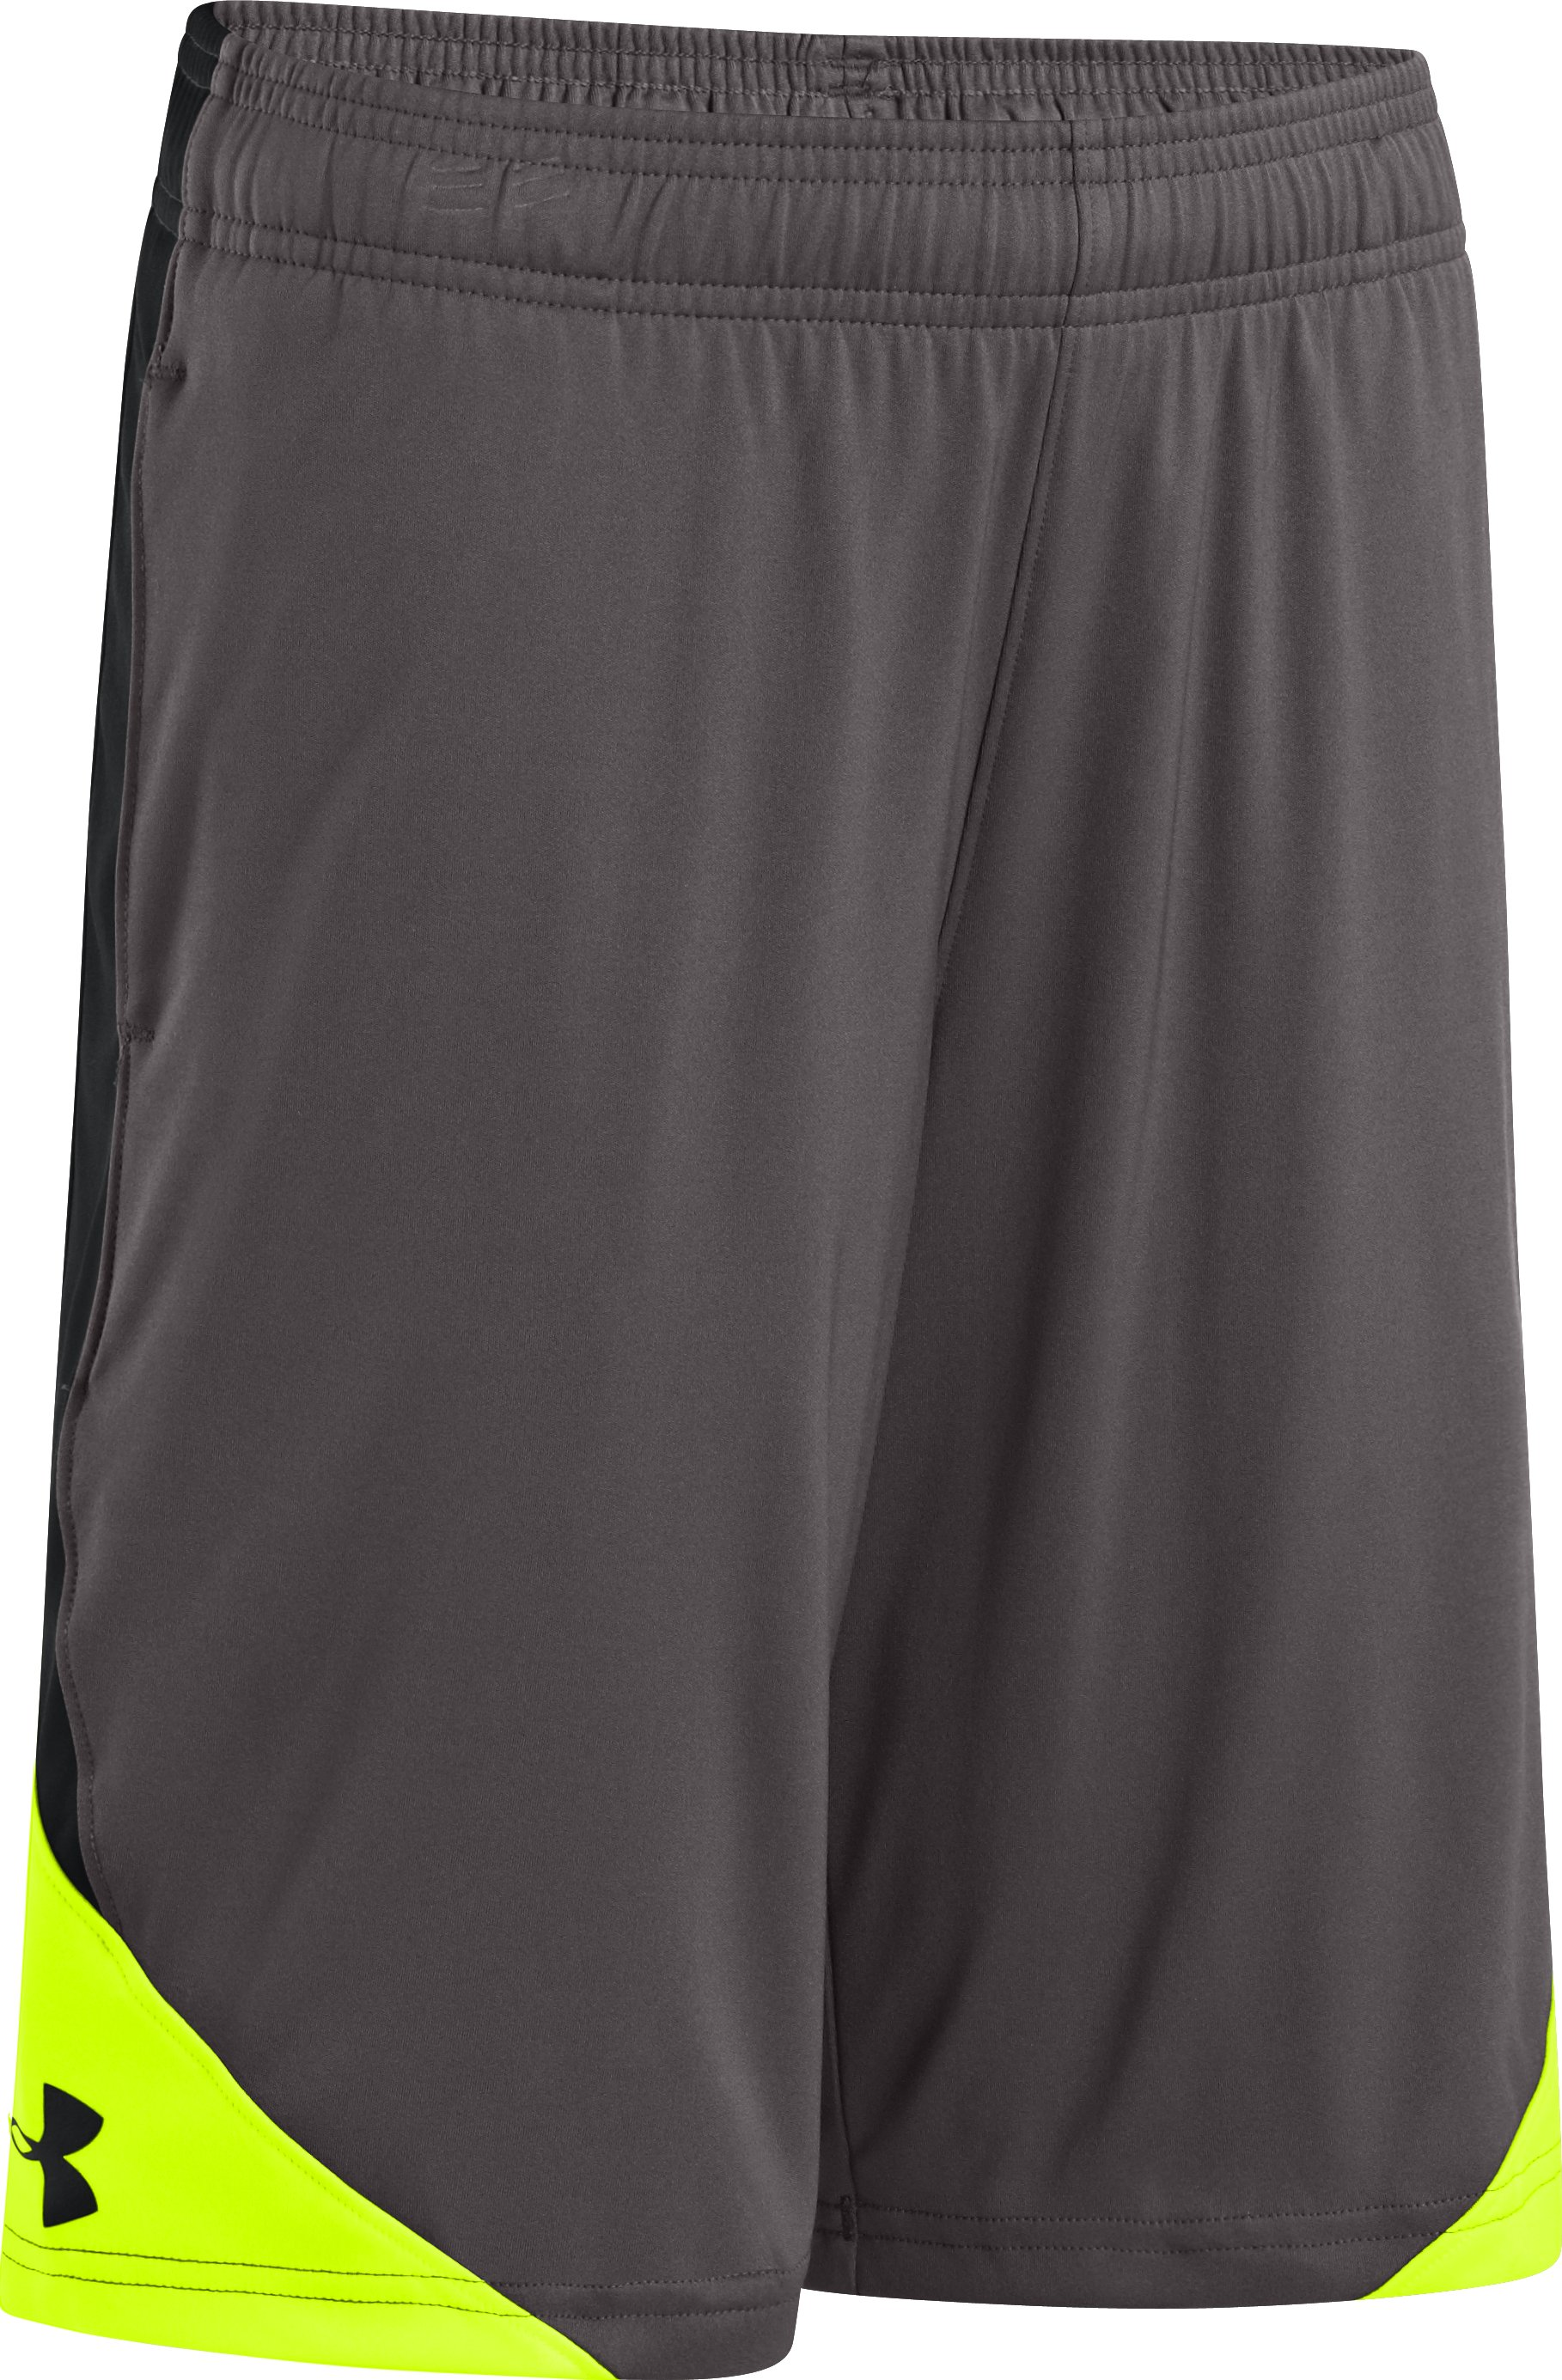 Boys' UA Extreme Shorts, Charcoal, zoomed image